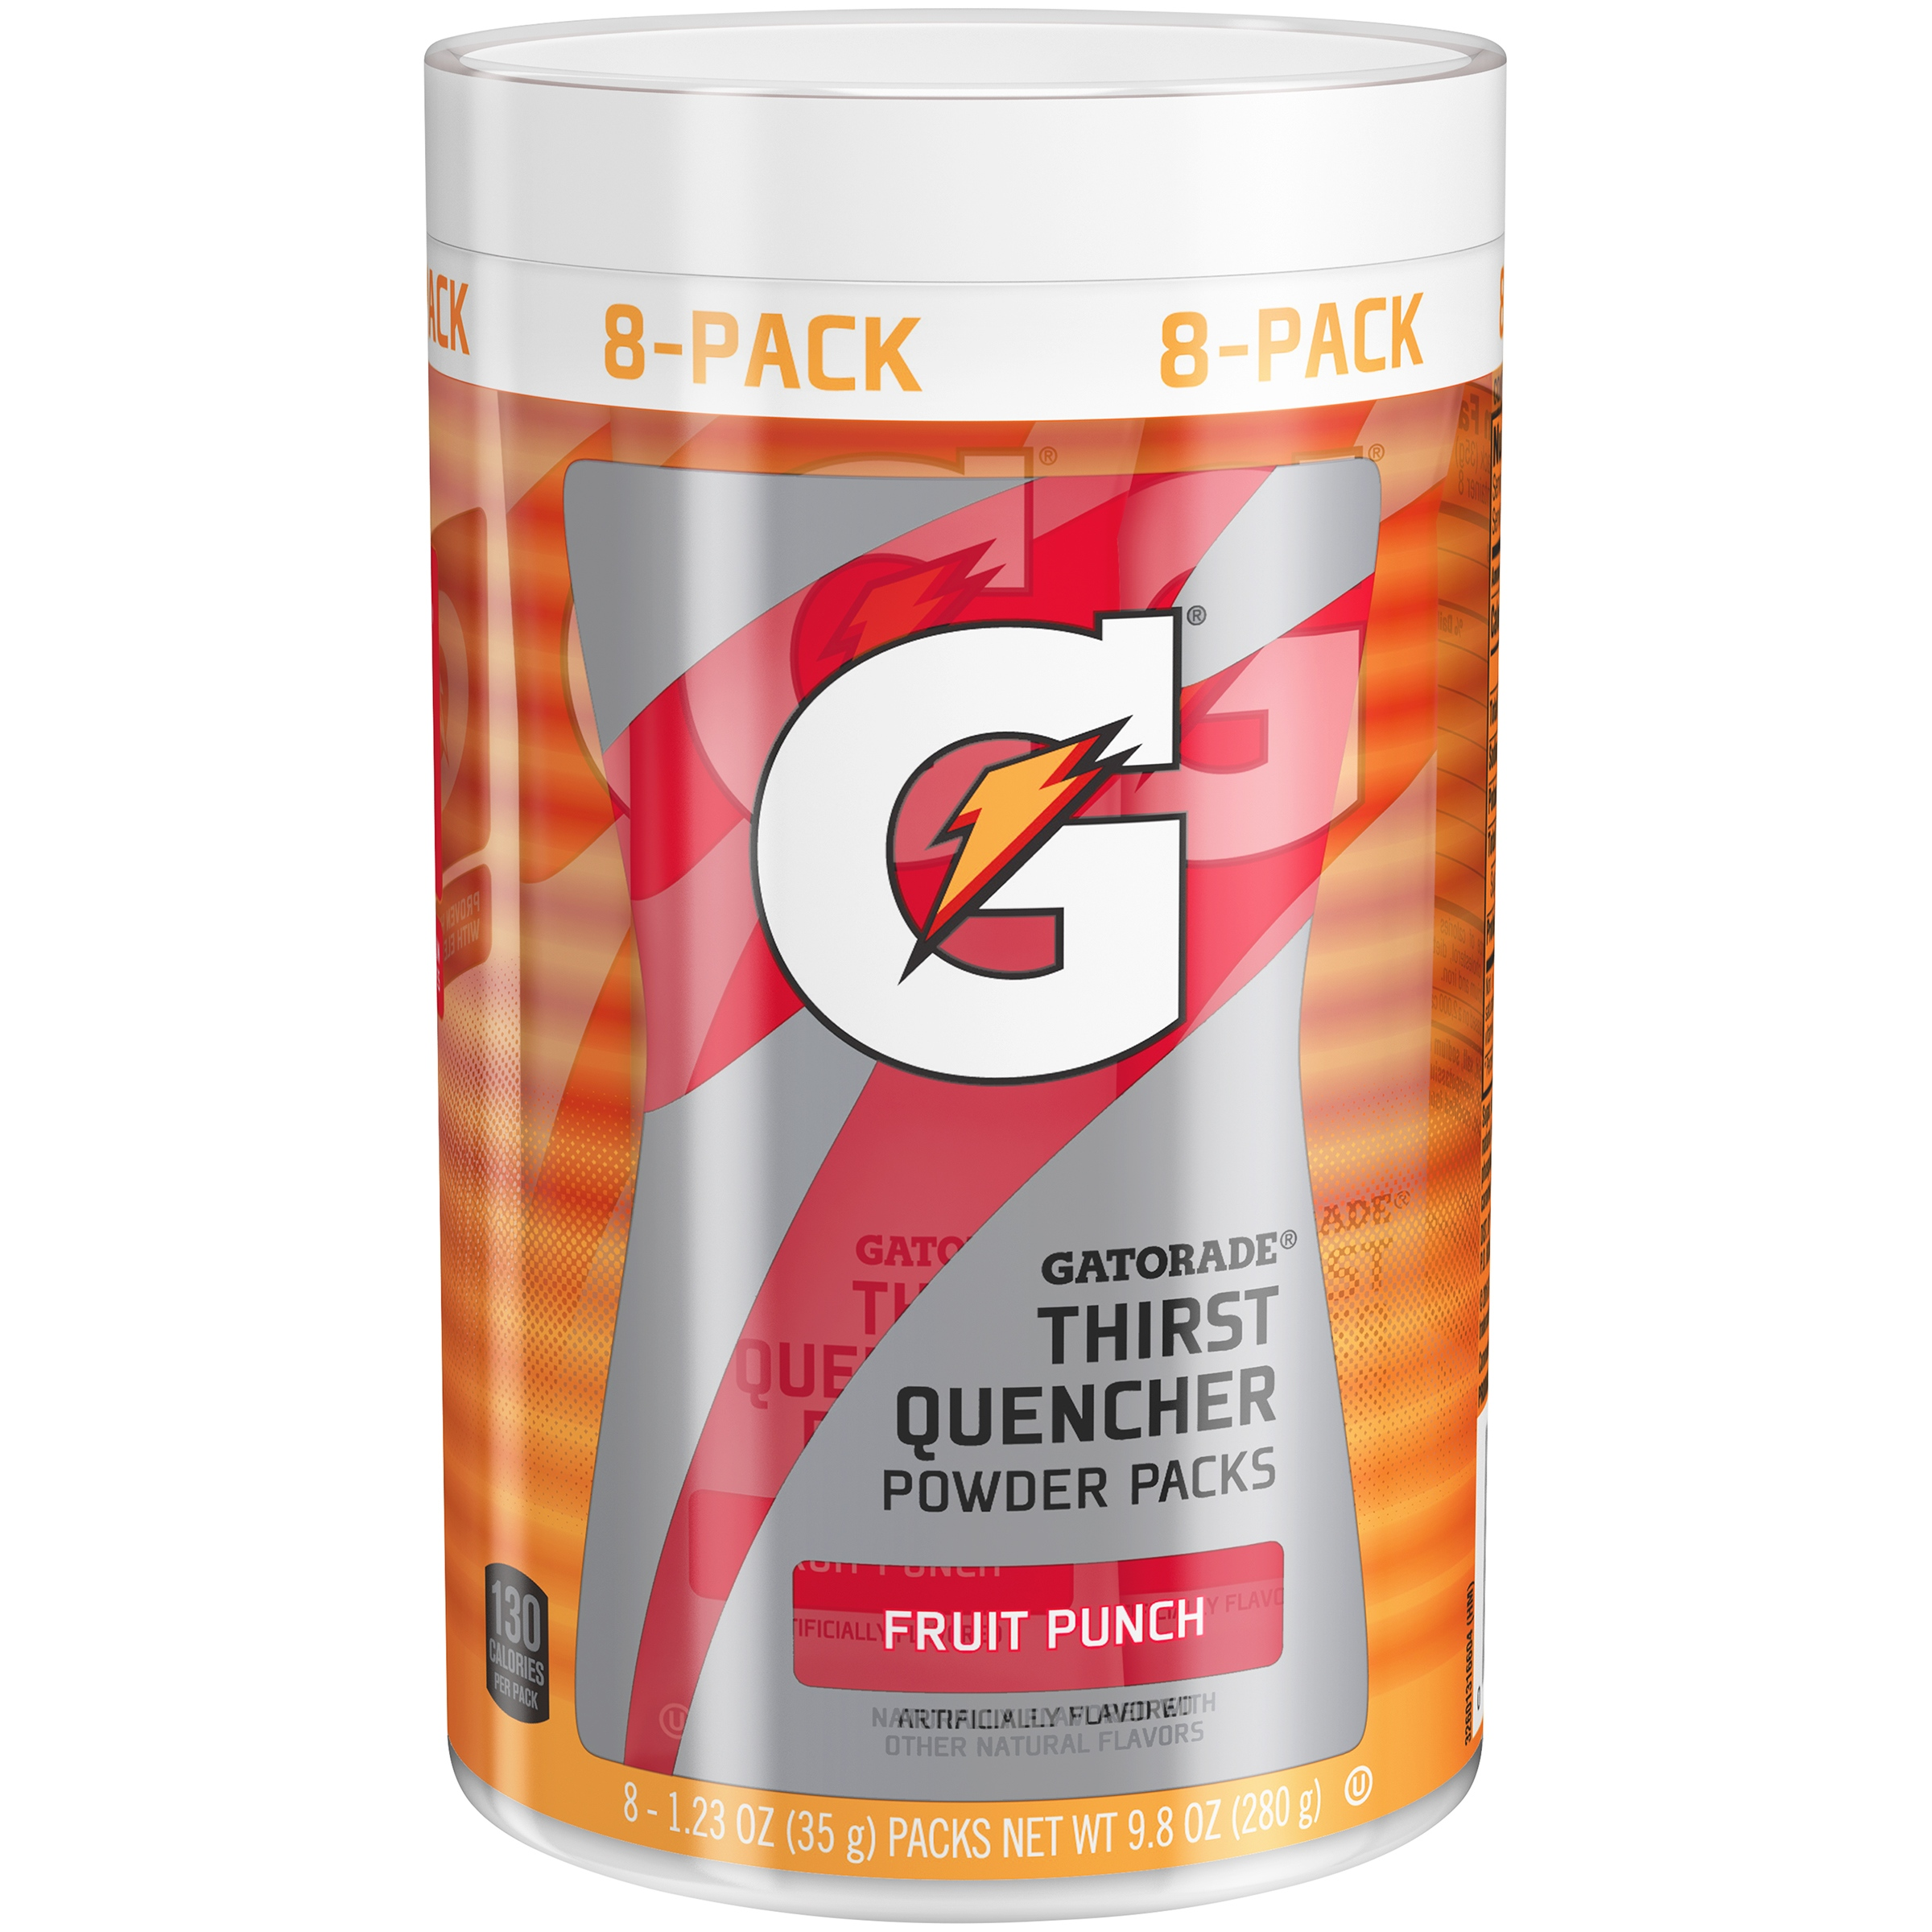 Gatorade Thirst Quencher Drink Mix, Fruit Punch, 1.23 Oz, 8 Packets, 1 Count